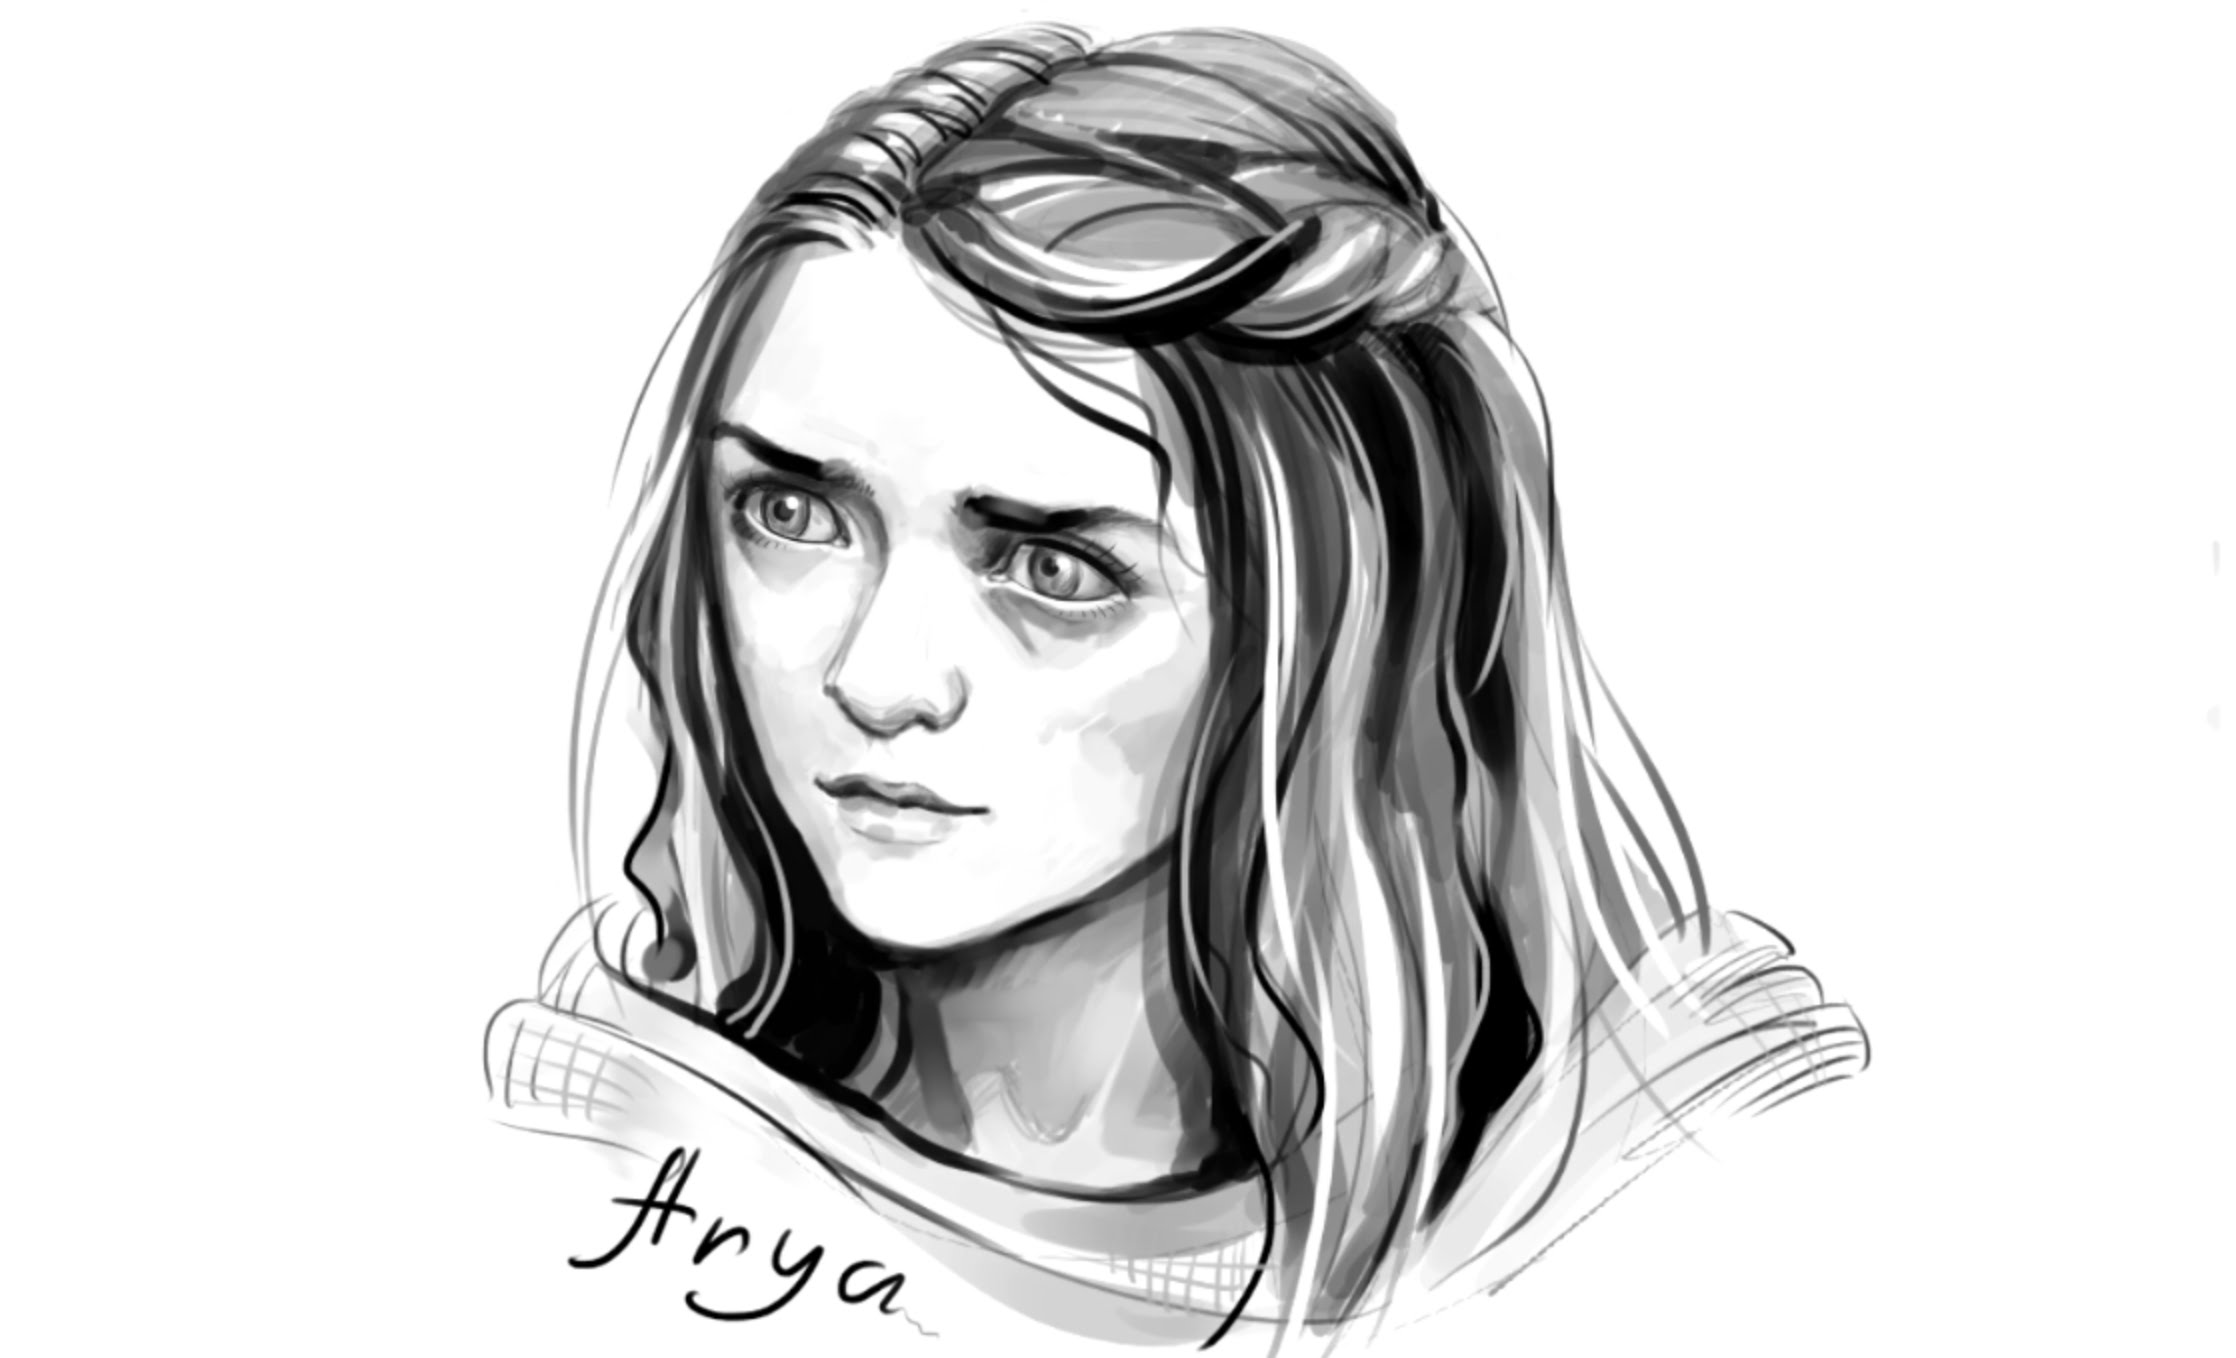 2236x1358 How To Draw Arya Stark From Games Of Thrones